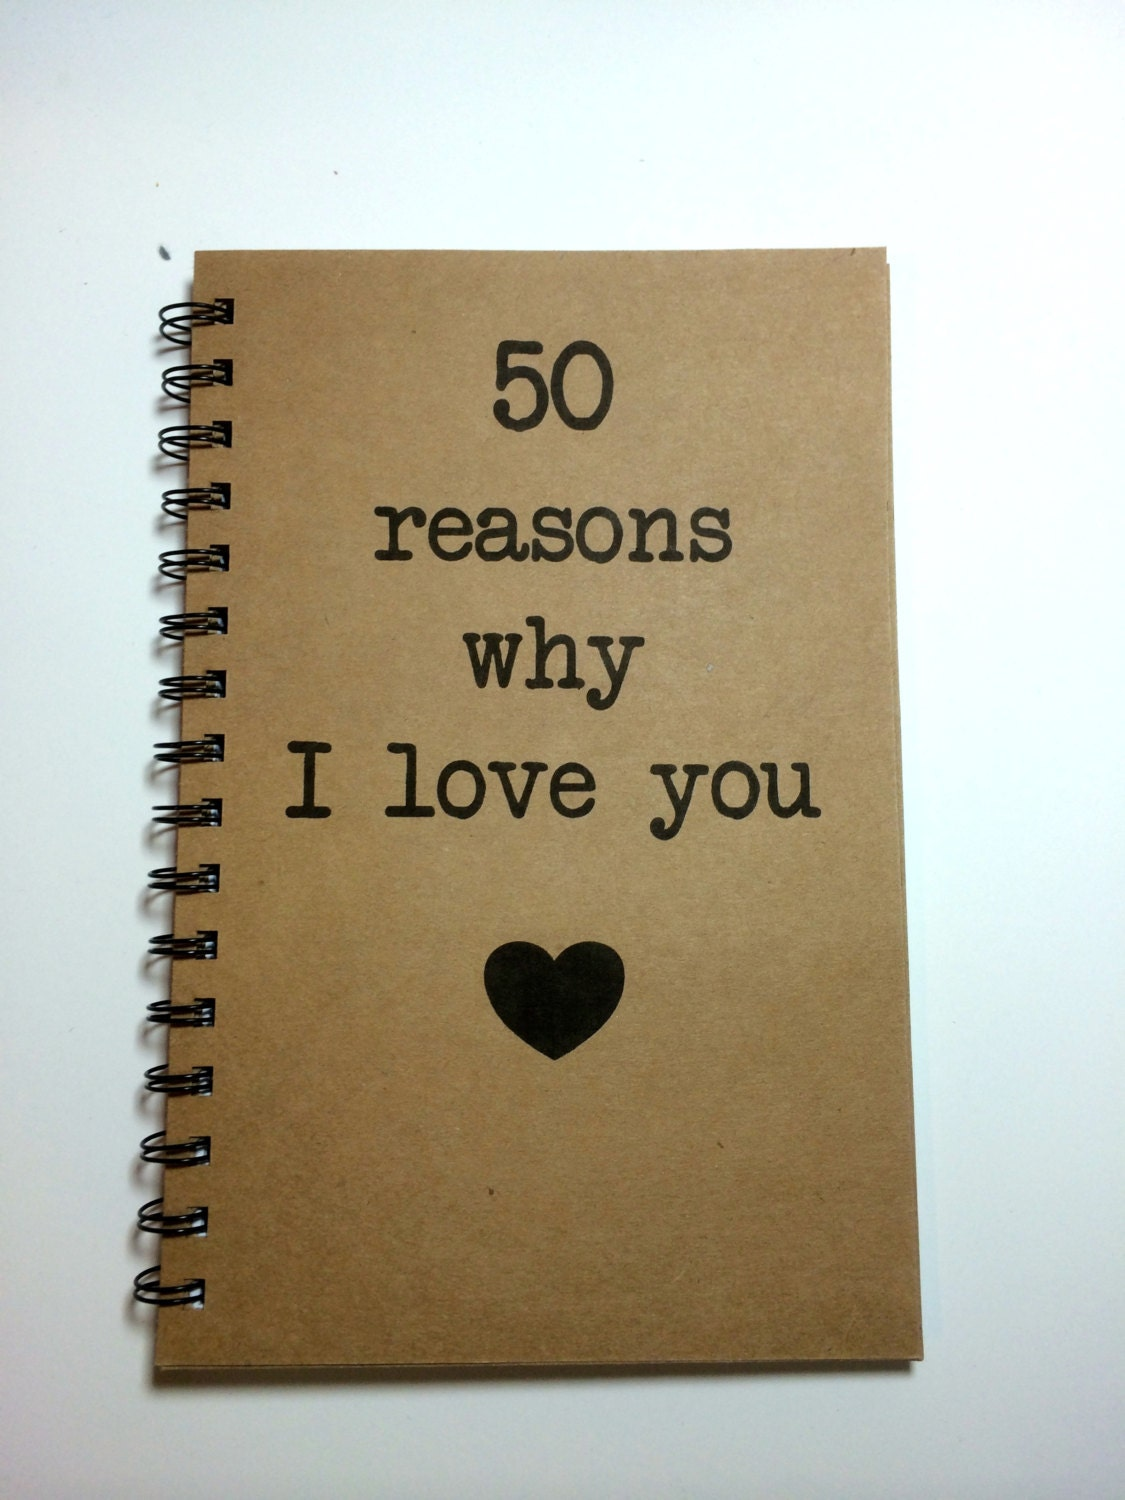 Reasons Why Makeup Is Important: Reasons Why I Love You Notebook Love Notes Journal